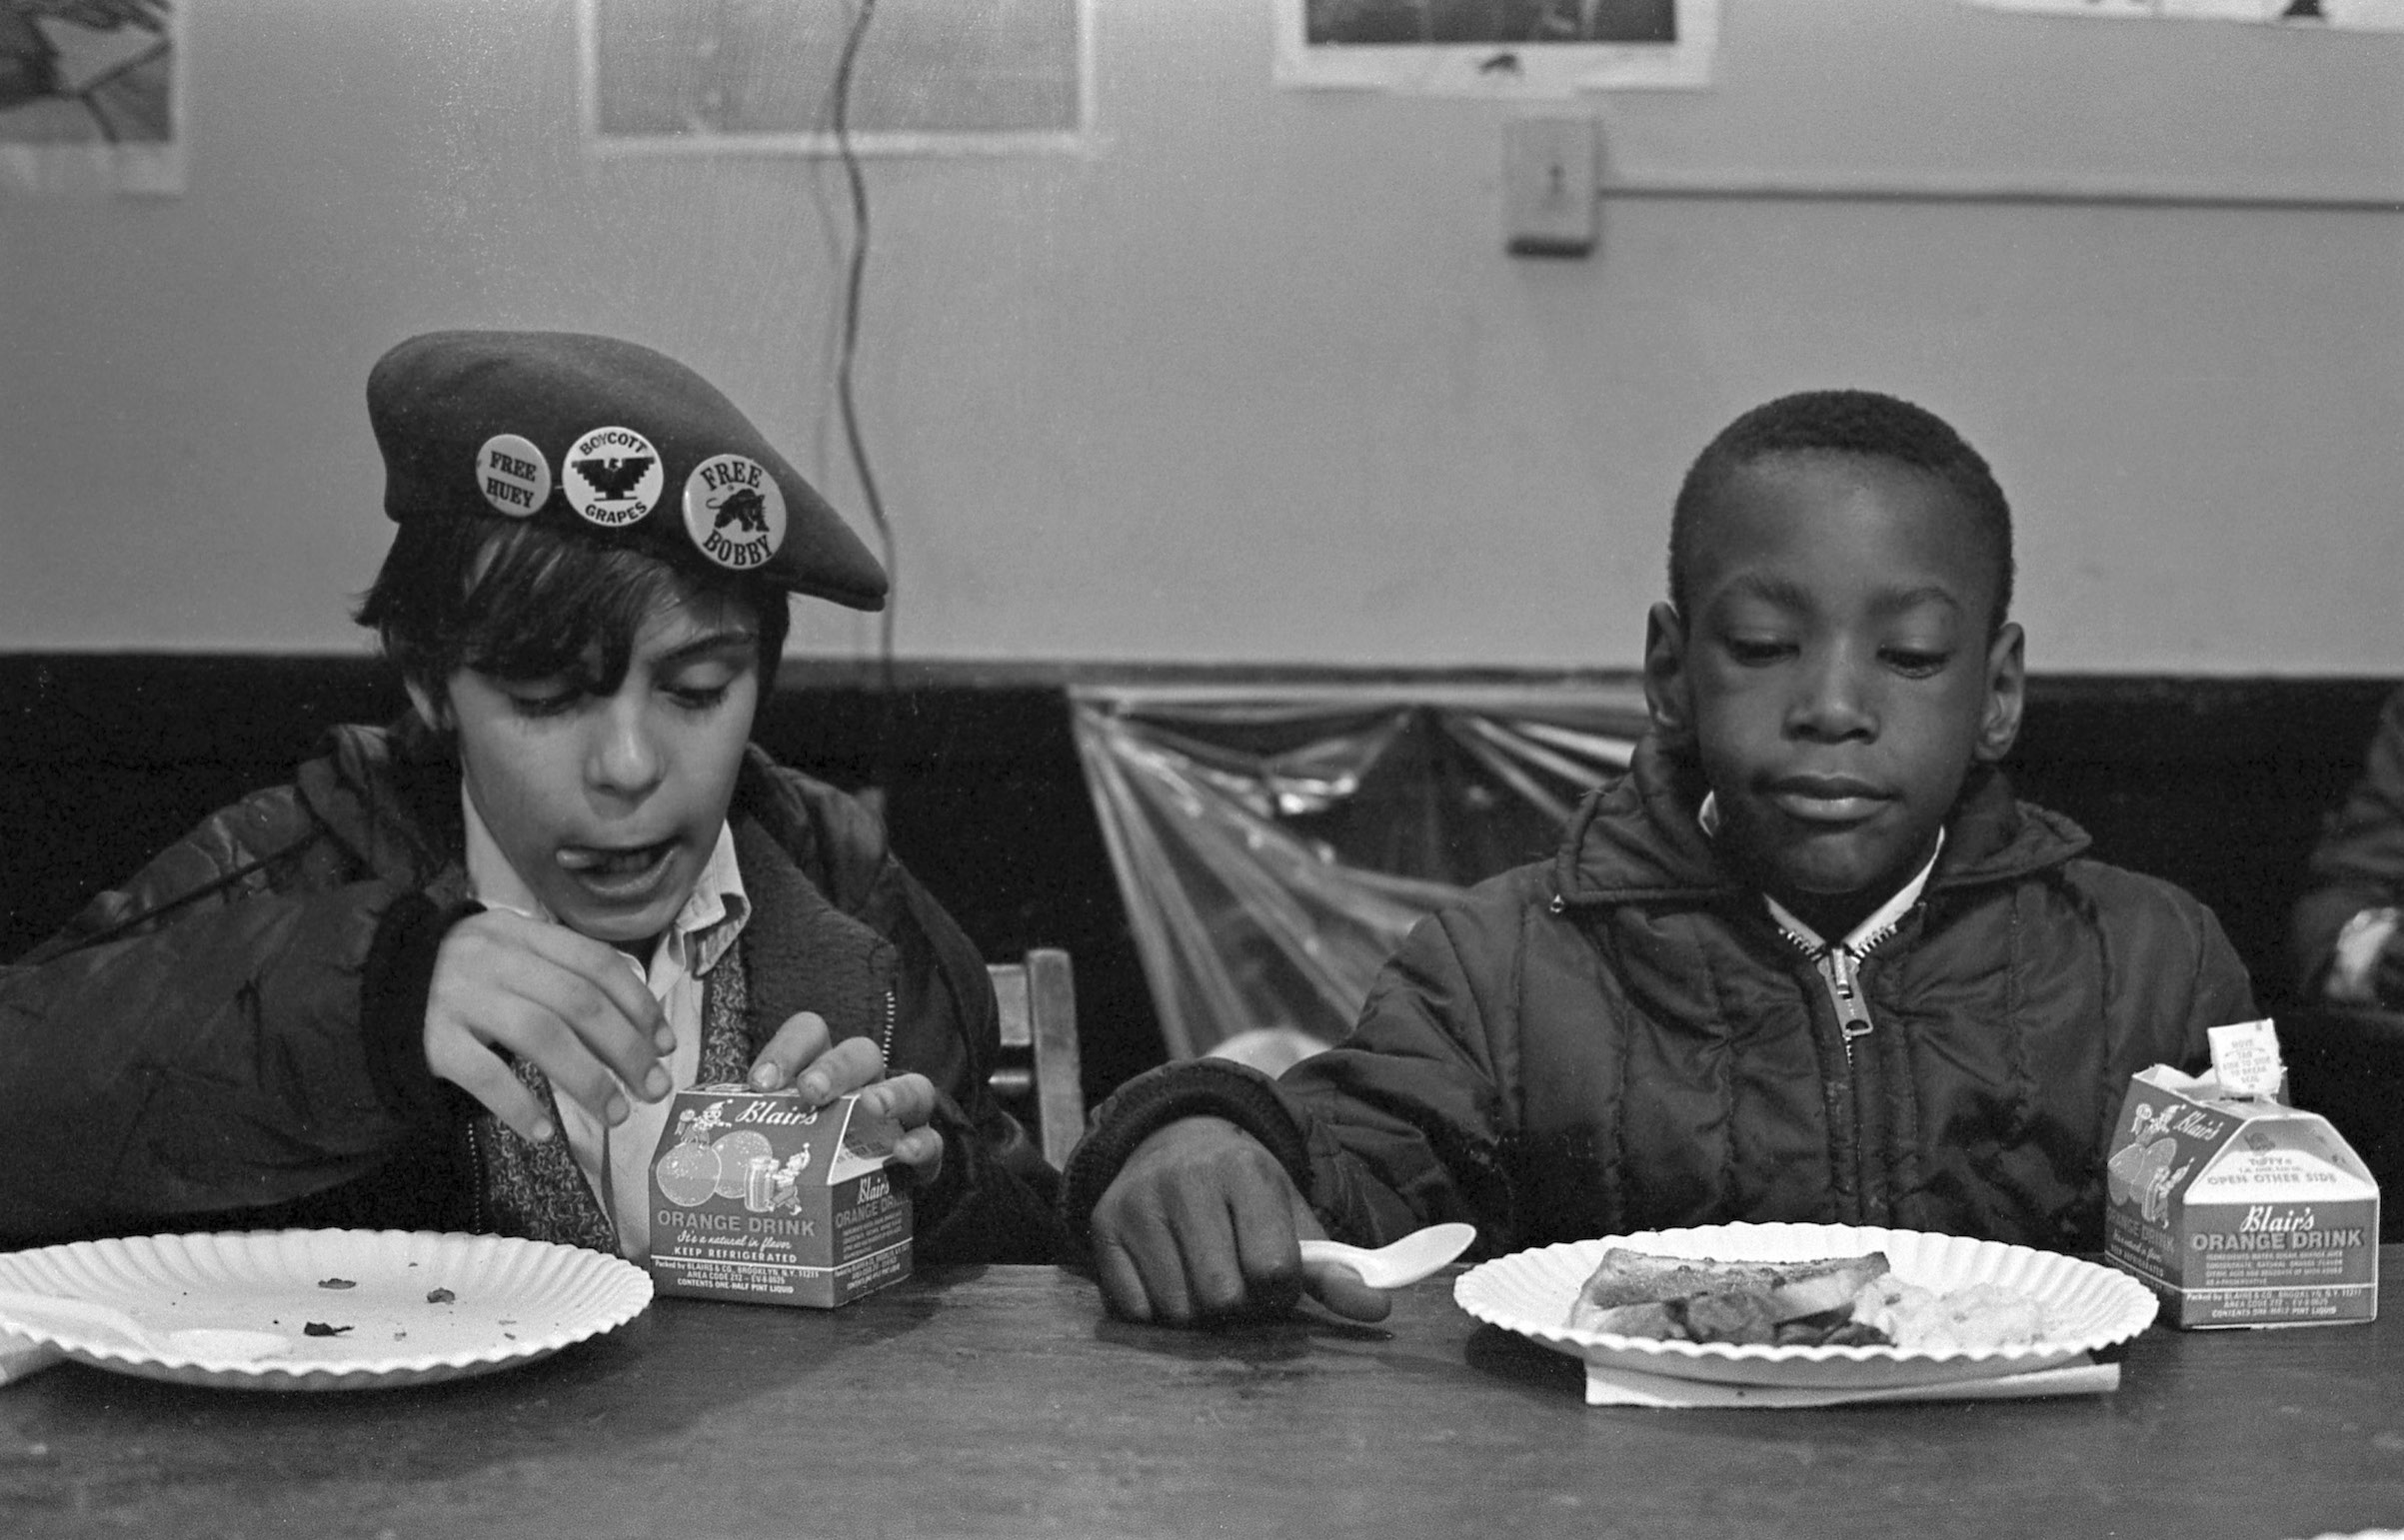 Two young boys eat during a free breakfast for children program sponsored by the Black Panther Party, New York City, winter 1969.